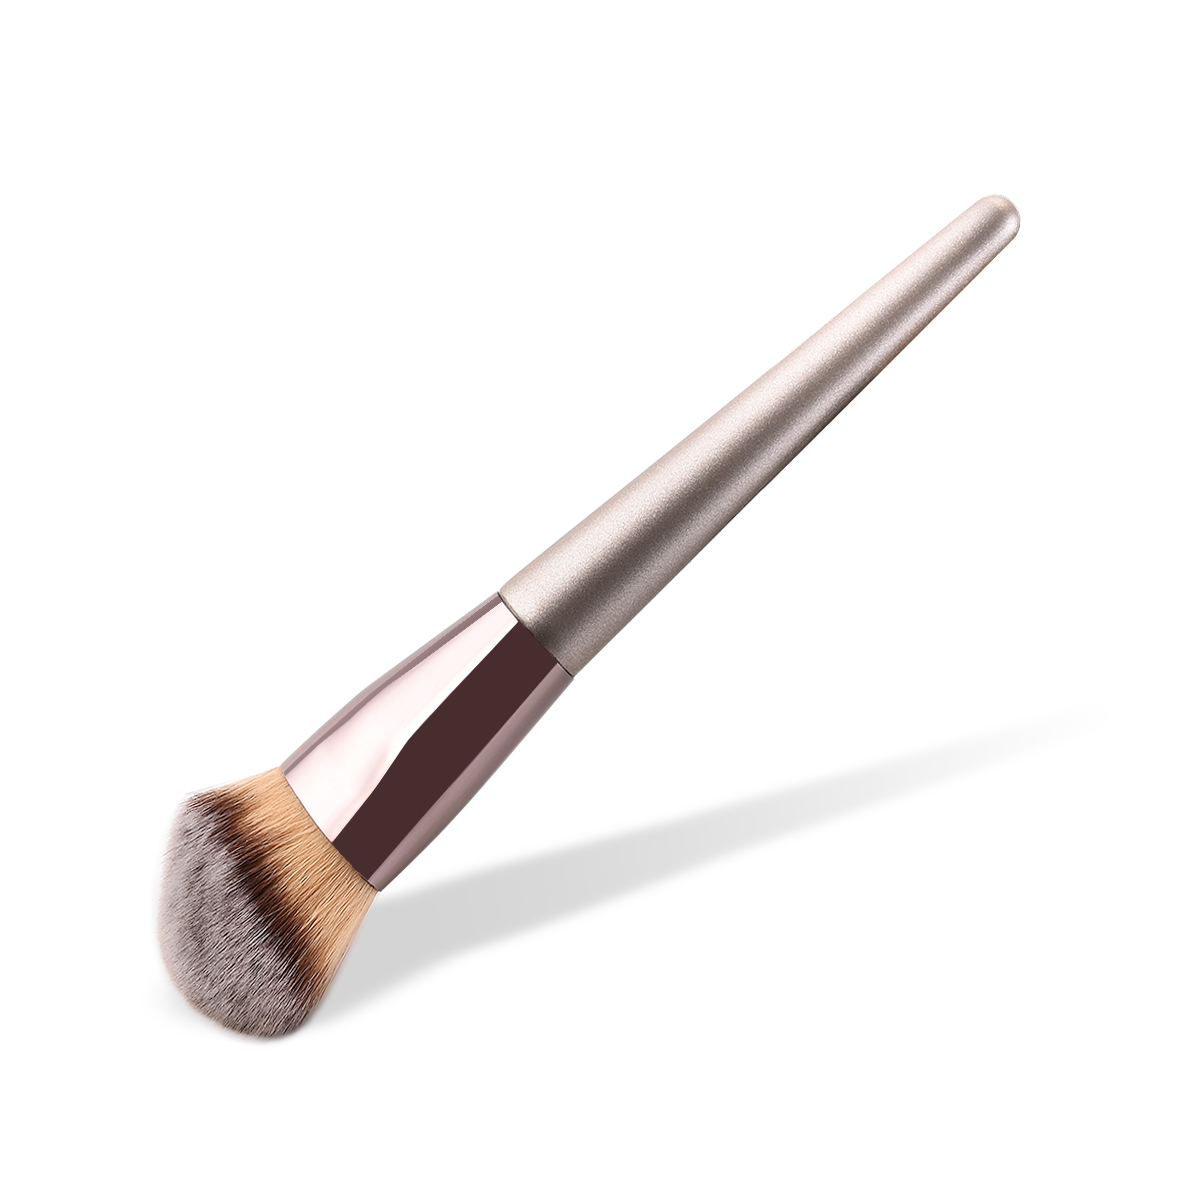 Image 2 - BBL 1 Piece Champagne Gold Precision Liquid Foundation Brush Perfect Pro Tapered Buffing Sculpting Angled Makeup Brushes Tools-in Eye Shadow Applicator from Beauty & Health